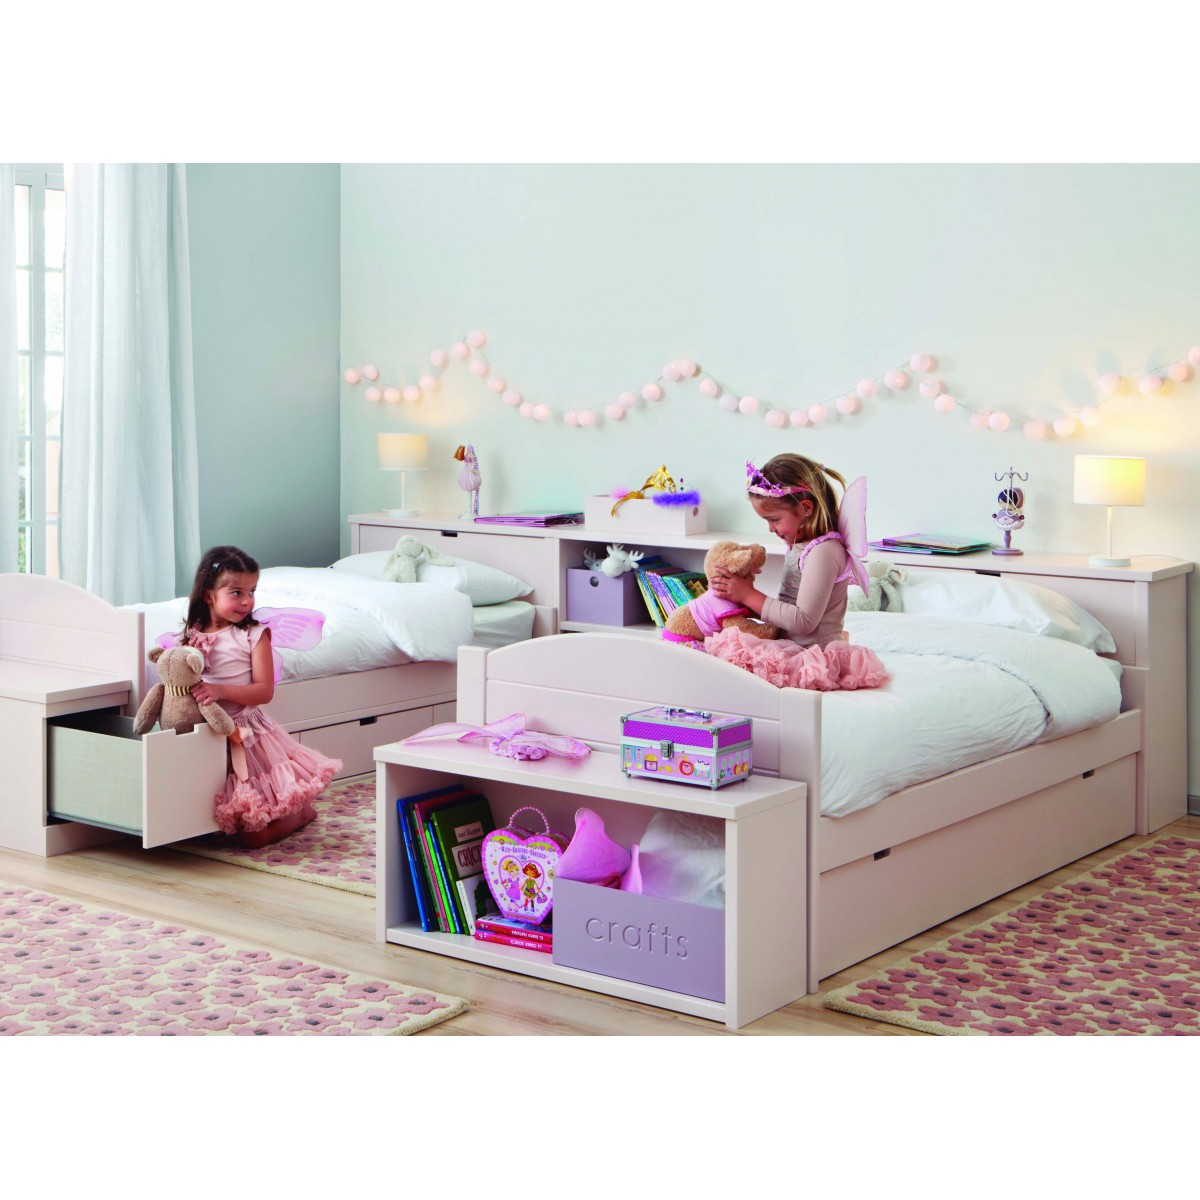 lit asoral haut de gamme pour enfants redondela. Black Bedroom Furniture Sets. Home Design Ideas